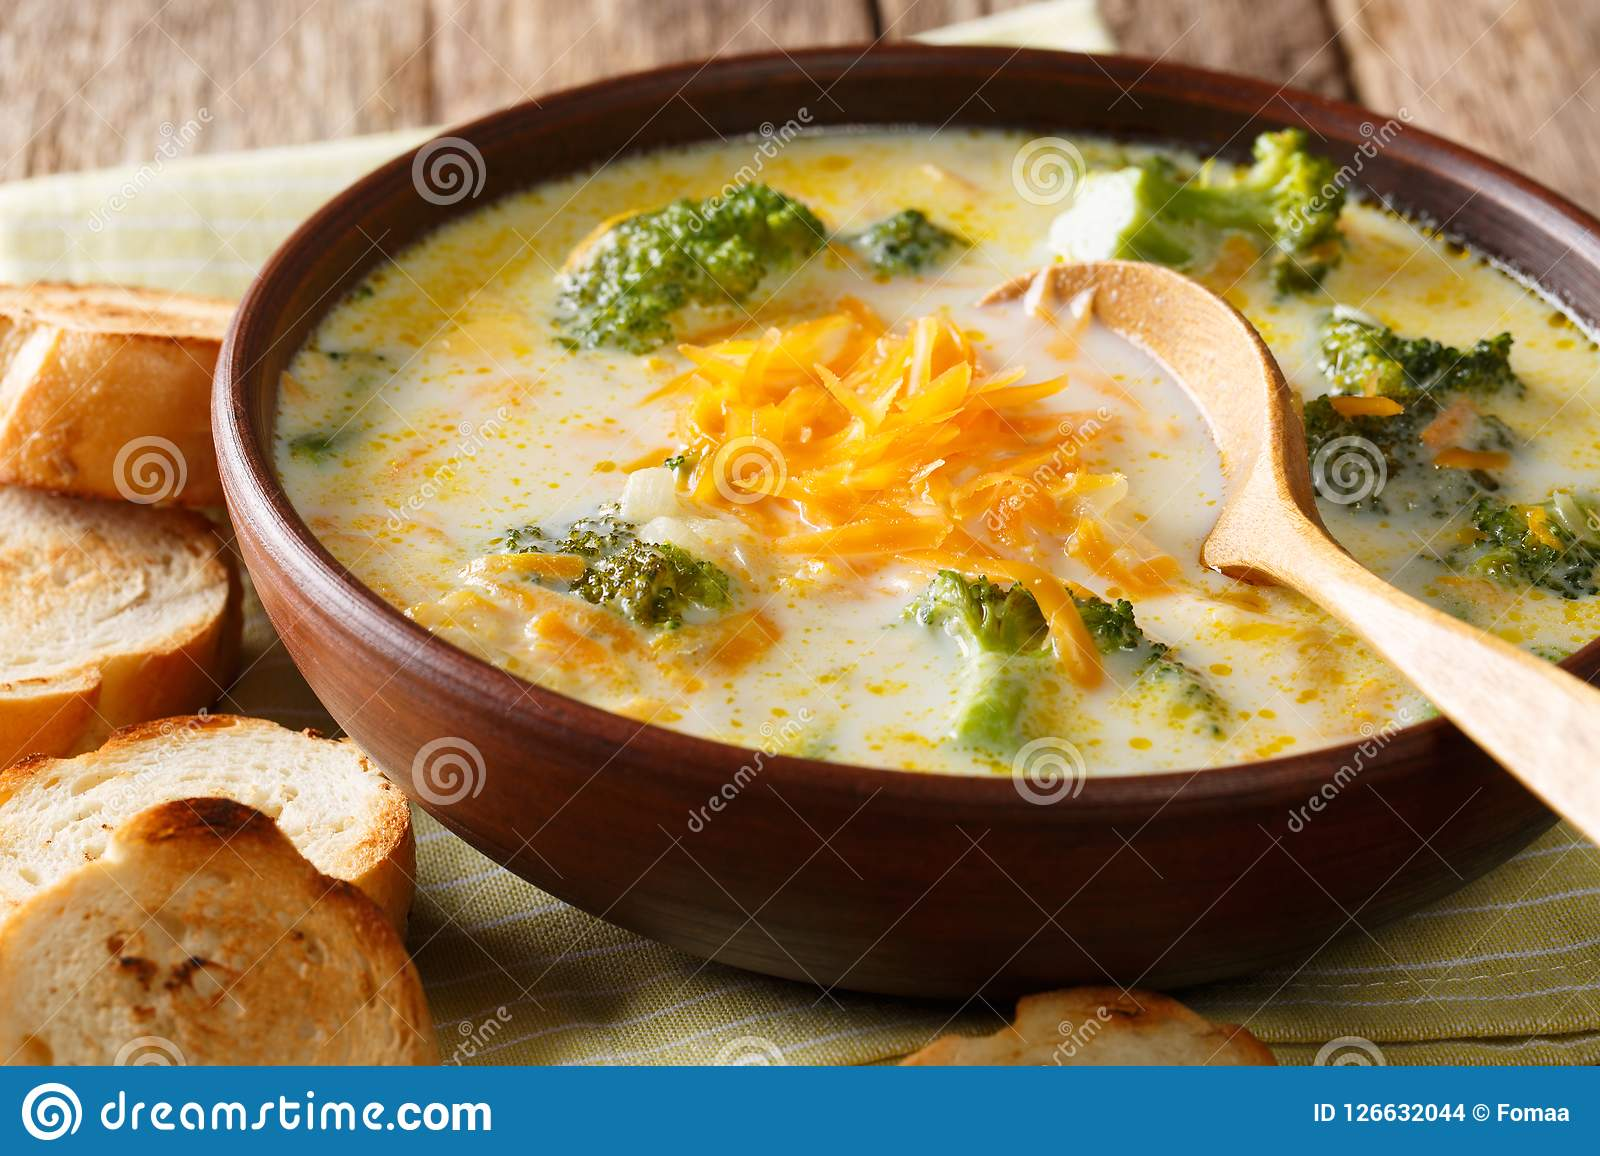 Freshly cooked broccoli cheese soup in a bowl with toast close-up. horizontal